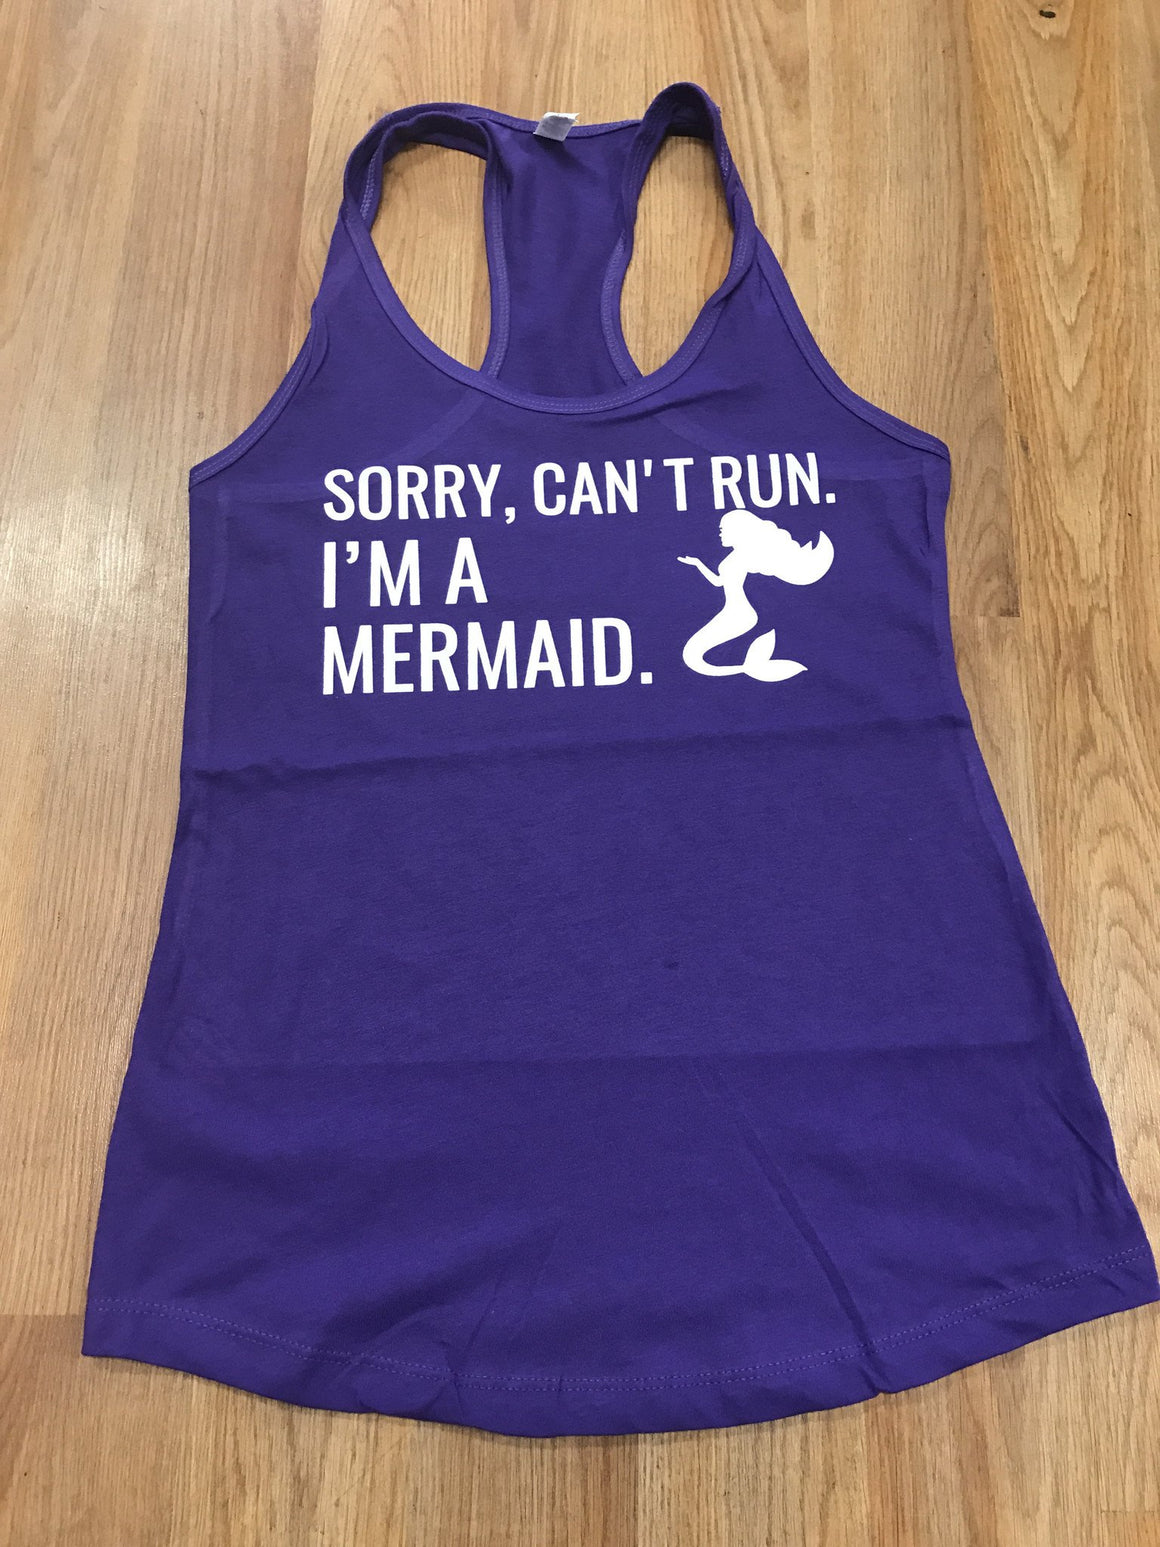 I'm a Mermaid Women's Workout Racerback Tank- The Sox Box